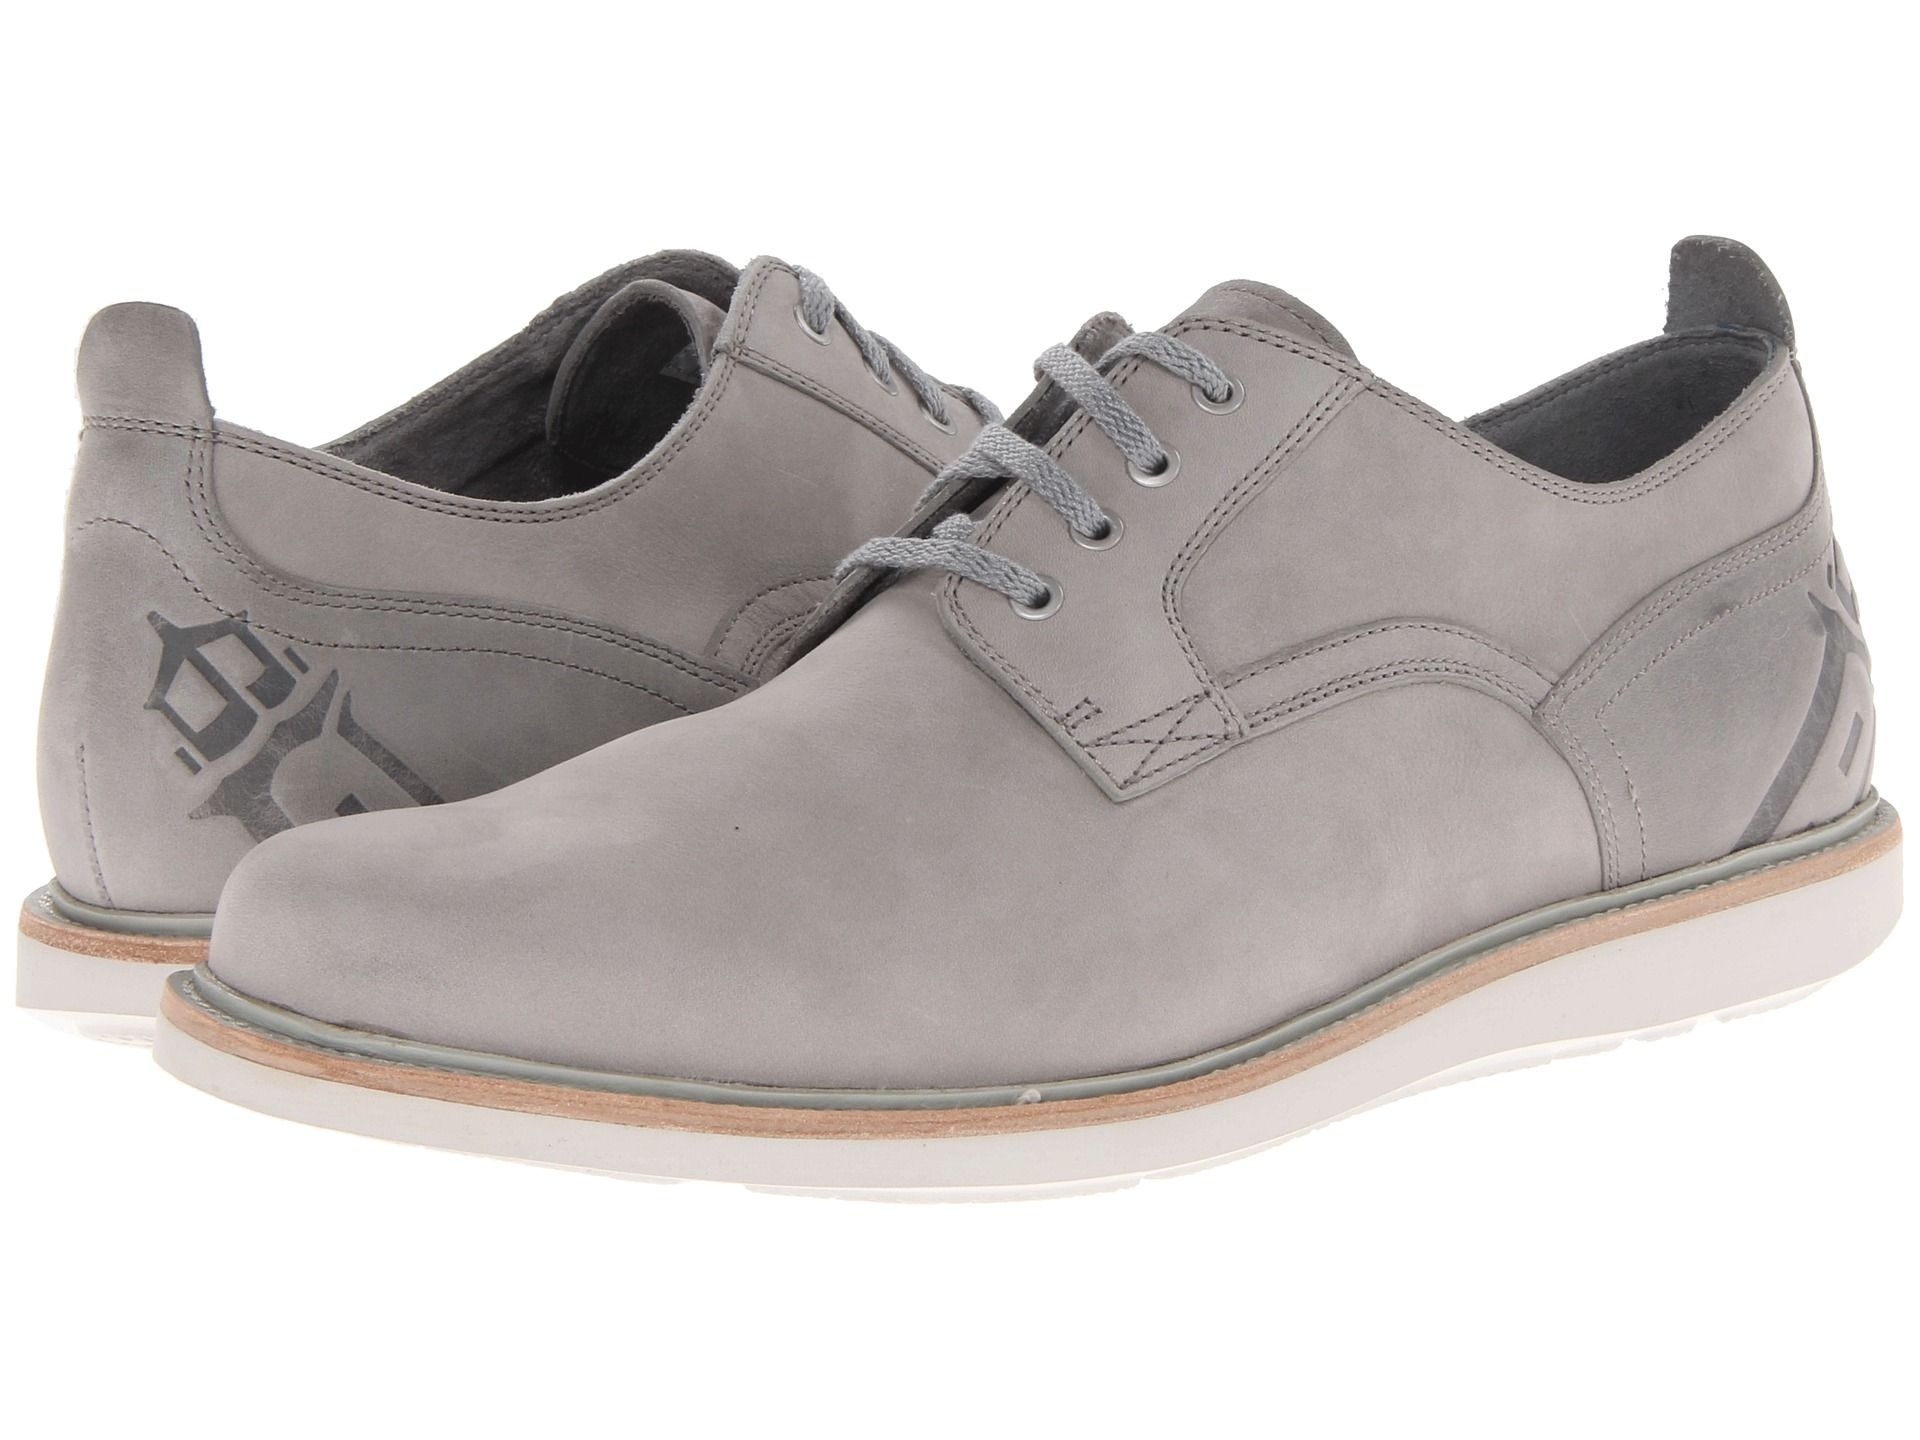 ROCKPORT. Oil-tanned Leather Oxford Lace-up. Own It In